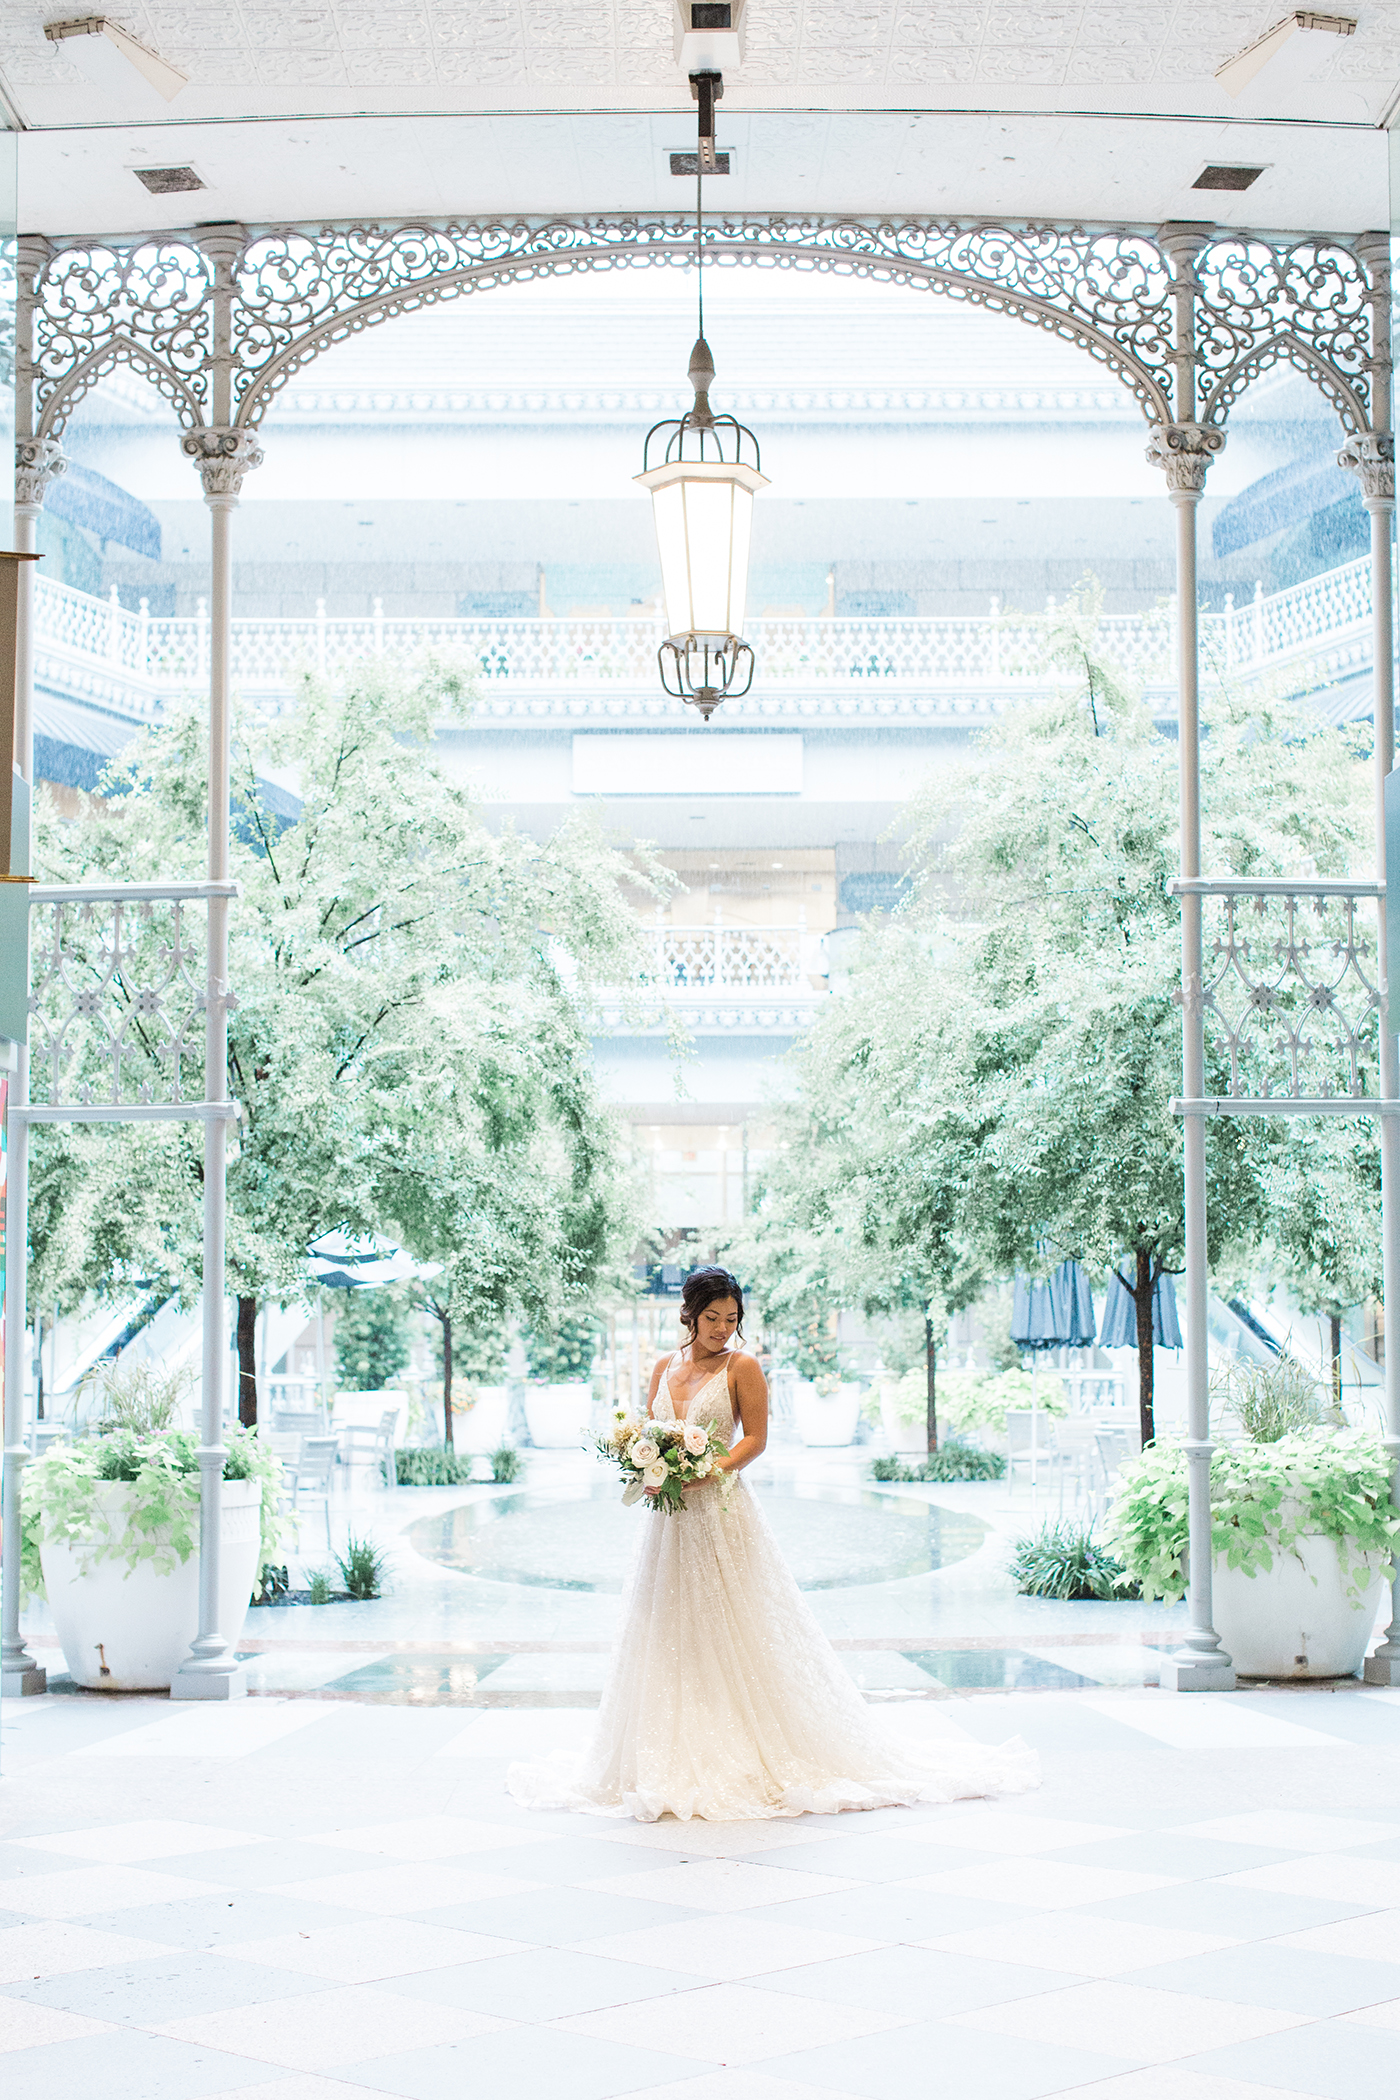 Dallas Wedding Planner - Hotel Crescent Court Dallas - Allday Events - 5.jpg